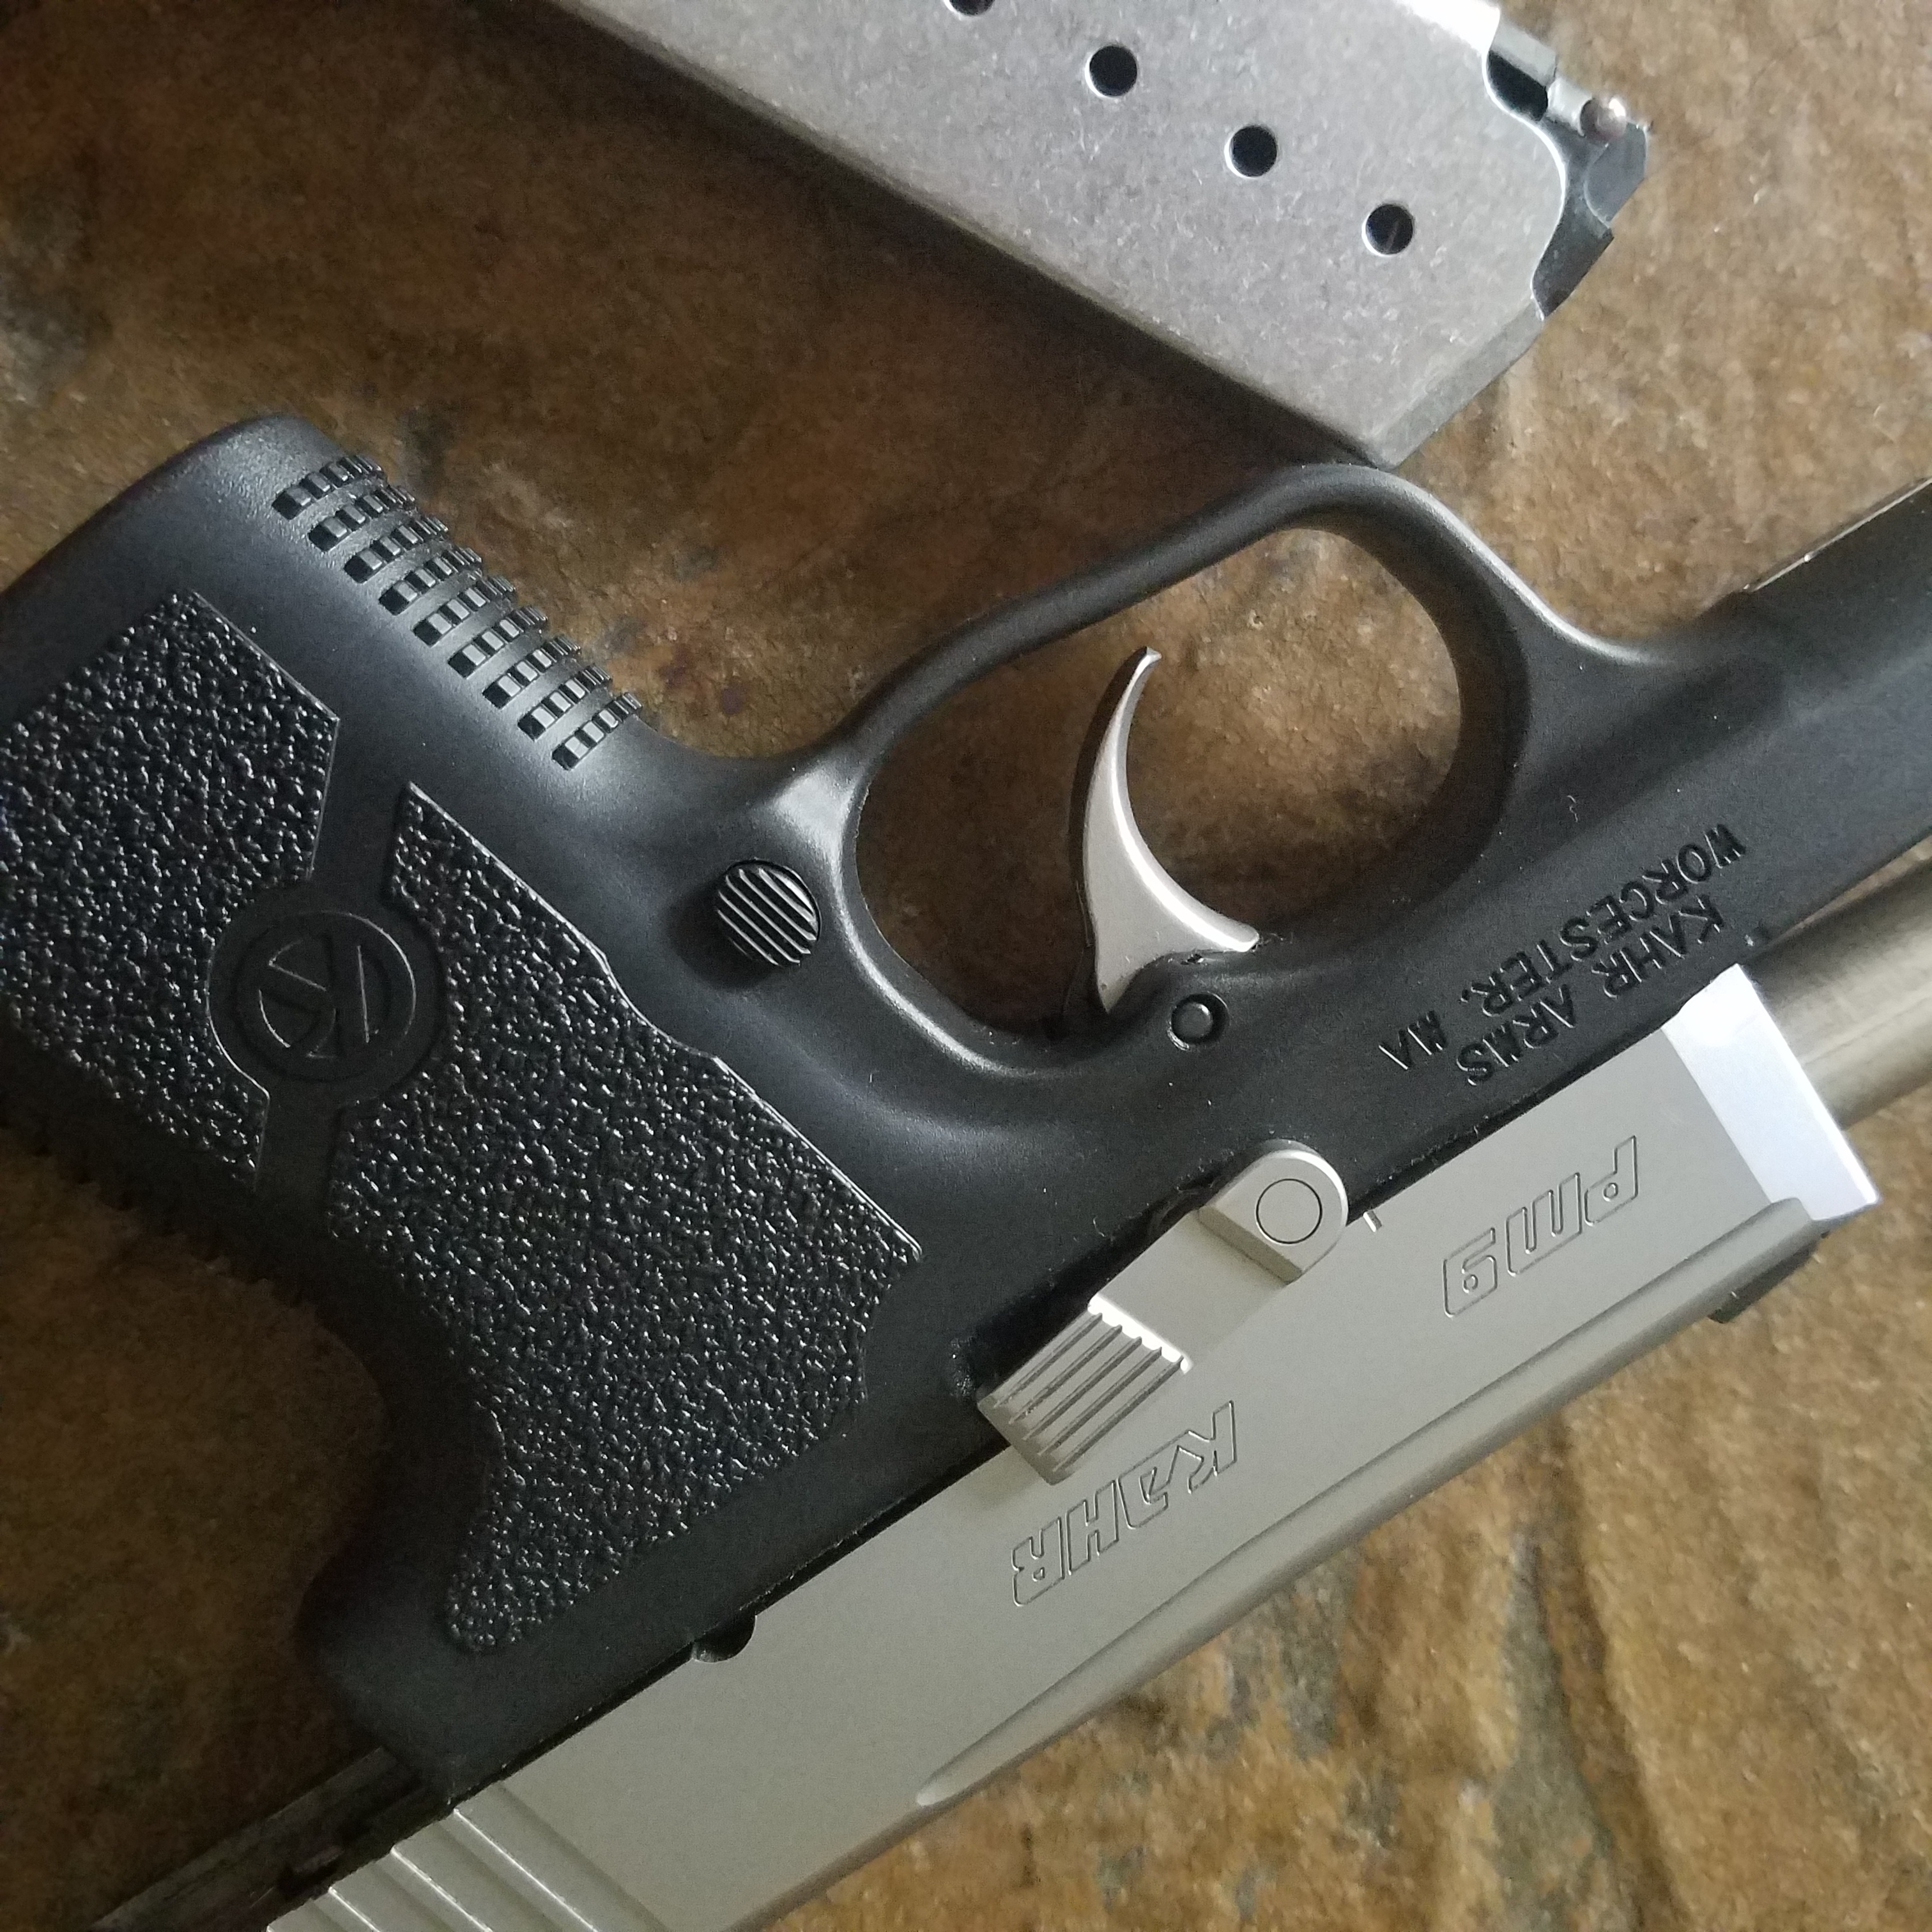 Kahr PM9: Surprise! A Functioning Pocket 9mm • Spotter Up